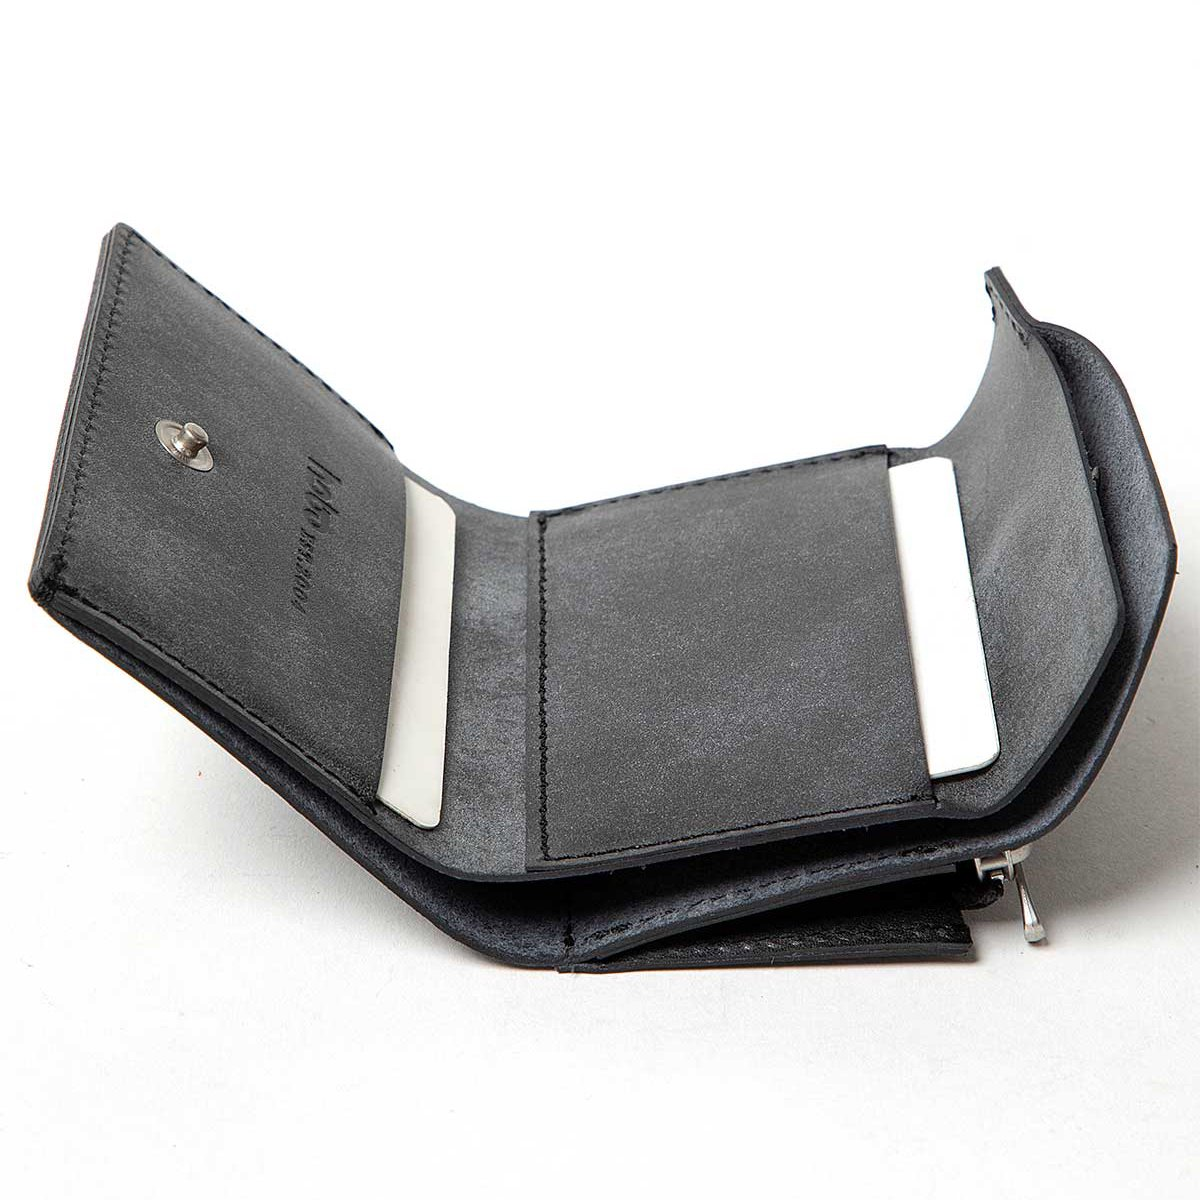 hobo * TRIFOLD COMPACT WALLET OILED COW LEATHER(2色展開)